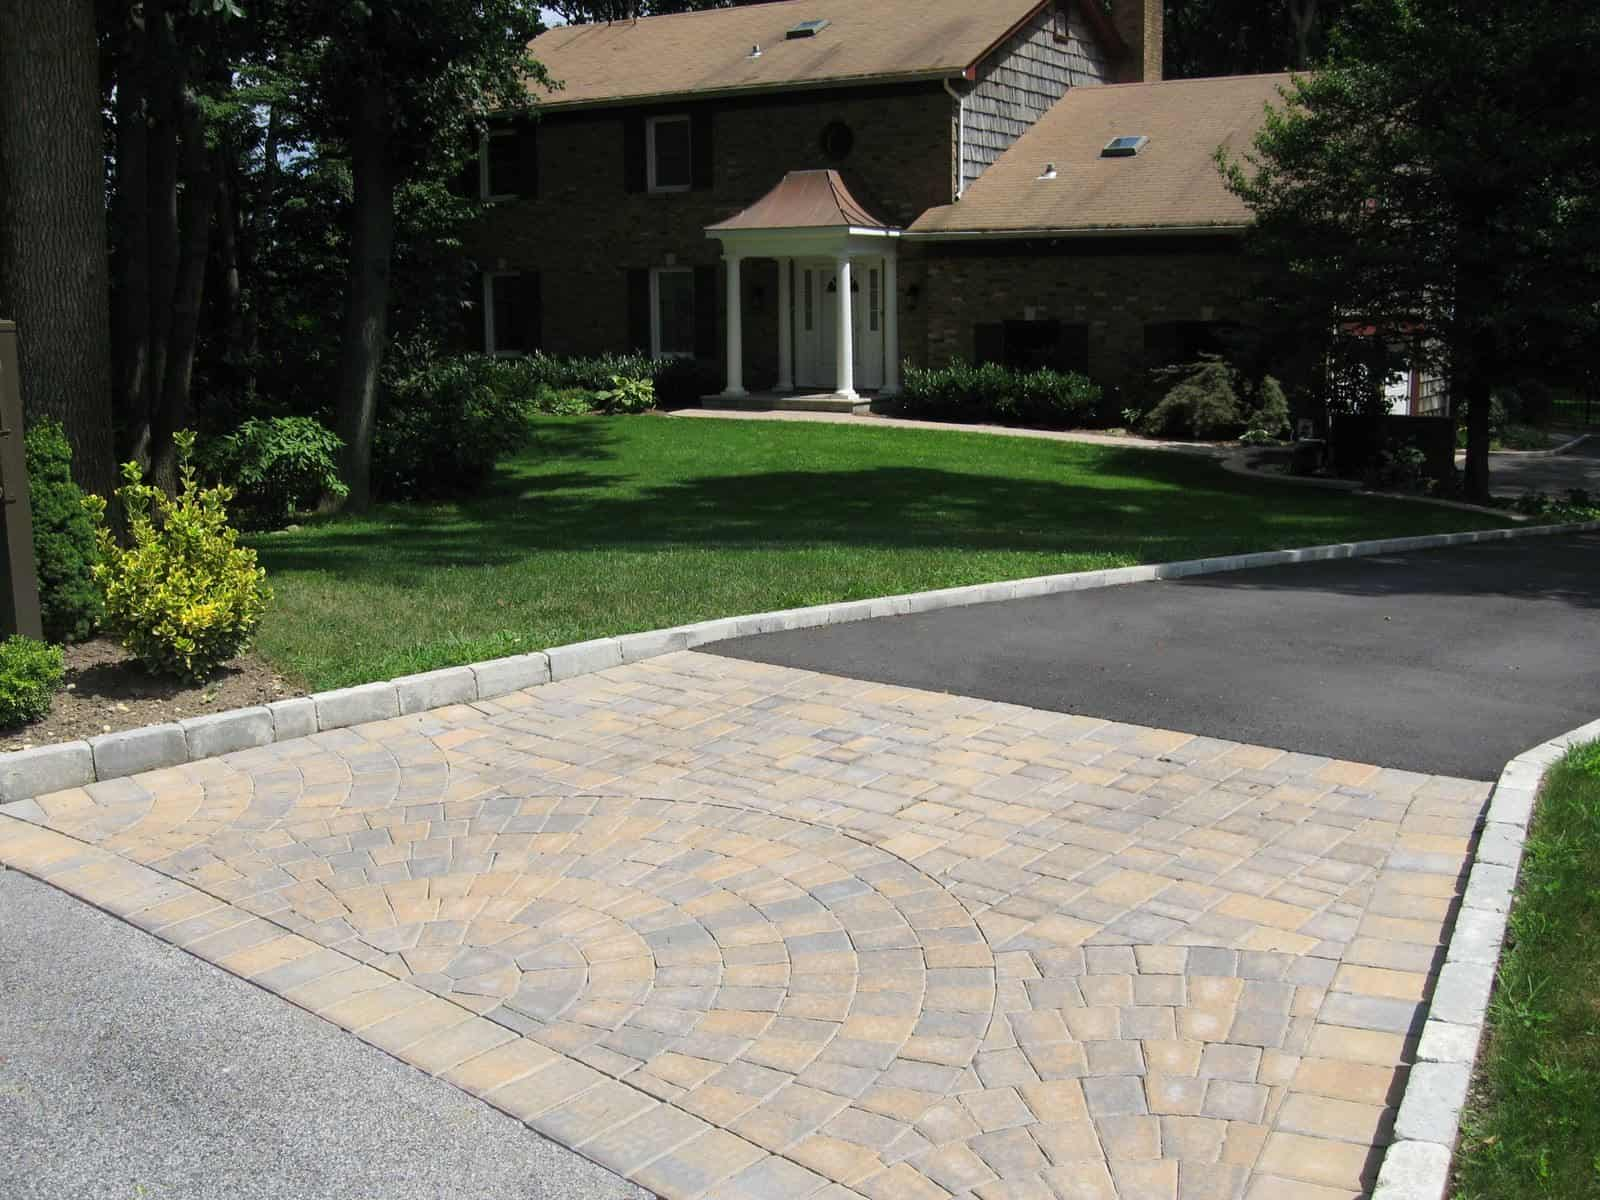 Asphalt Driveway, Belgium Block Border, and Cambridge - Sherwood Collection - Ledgestone - Toffee Onyx - Apron with Fan inlays